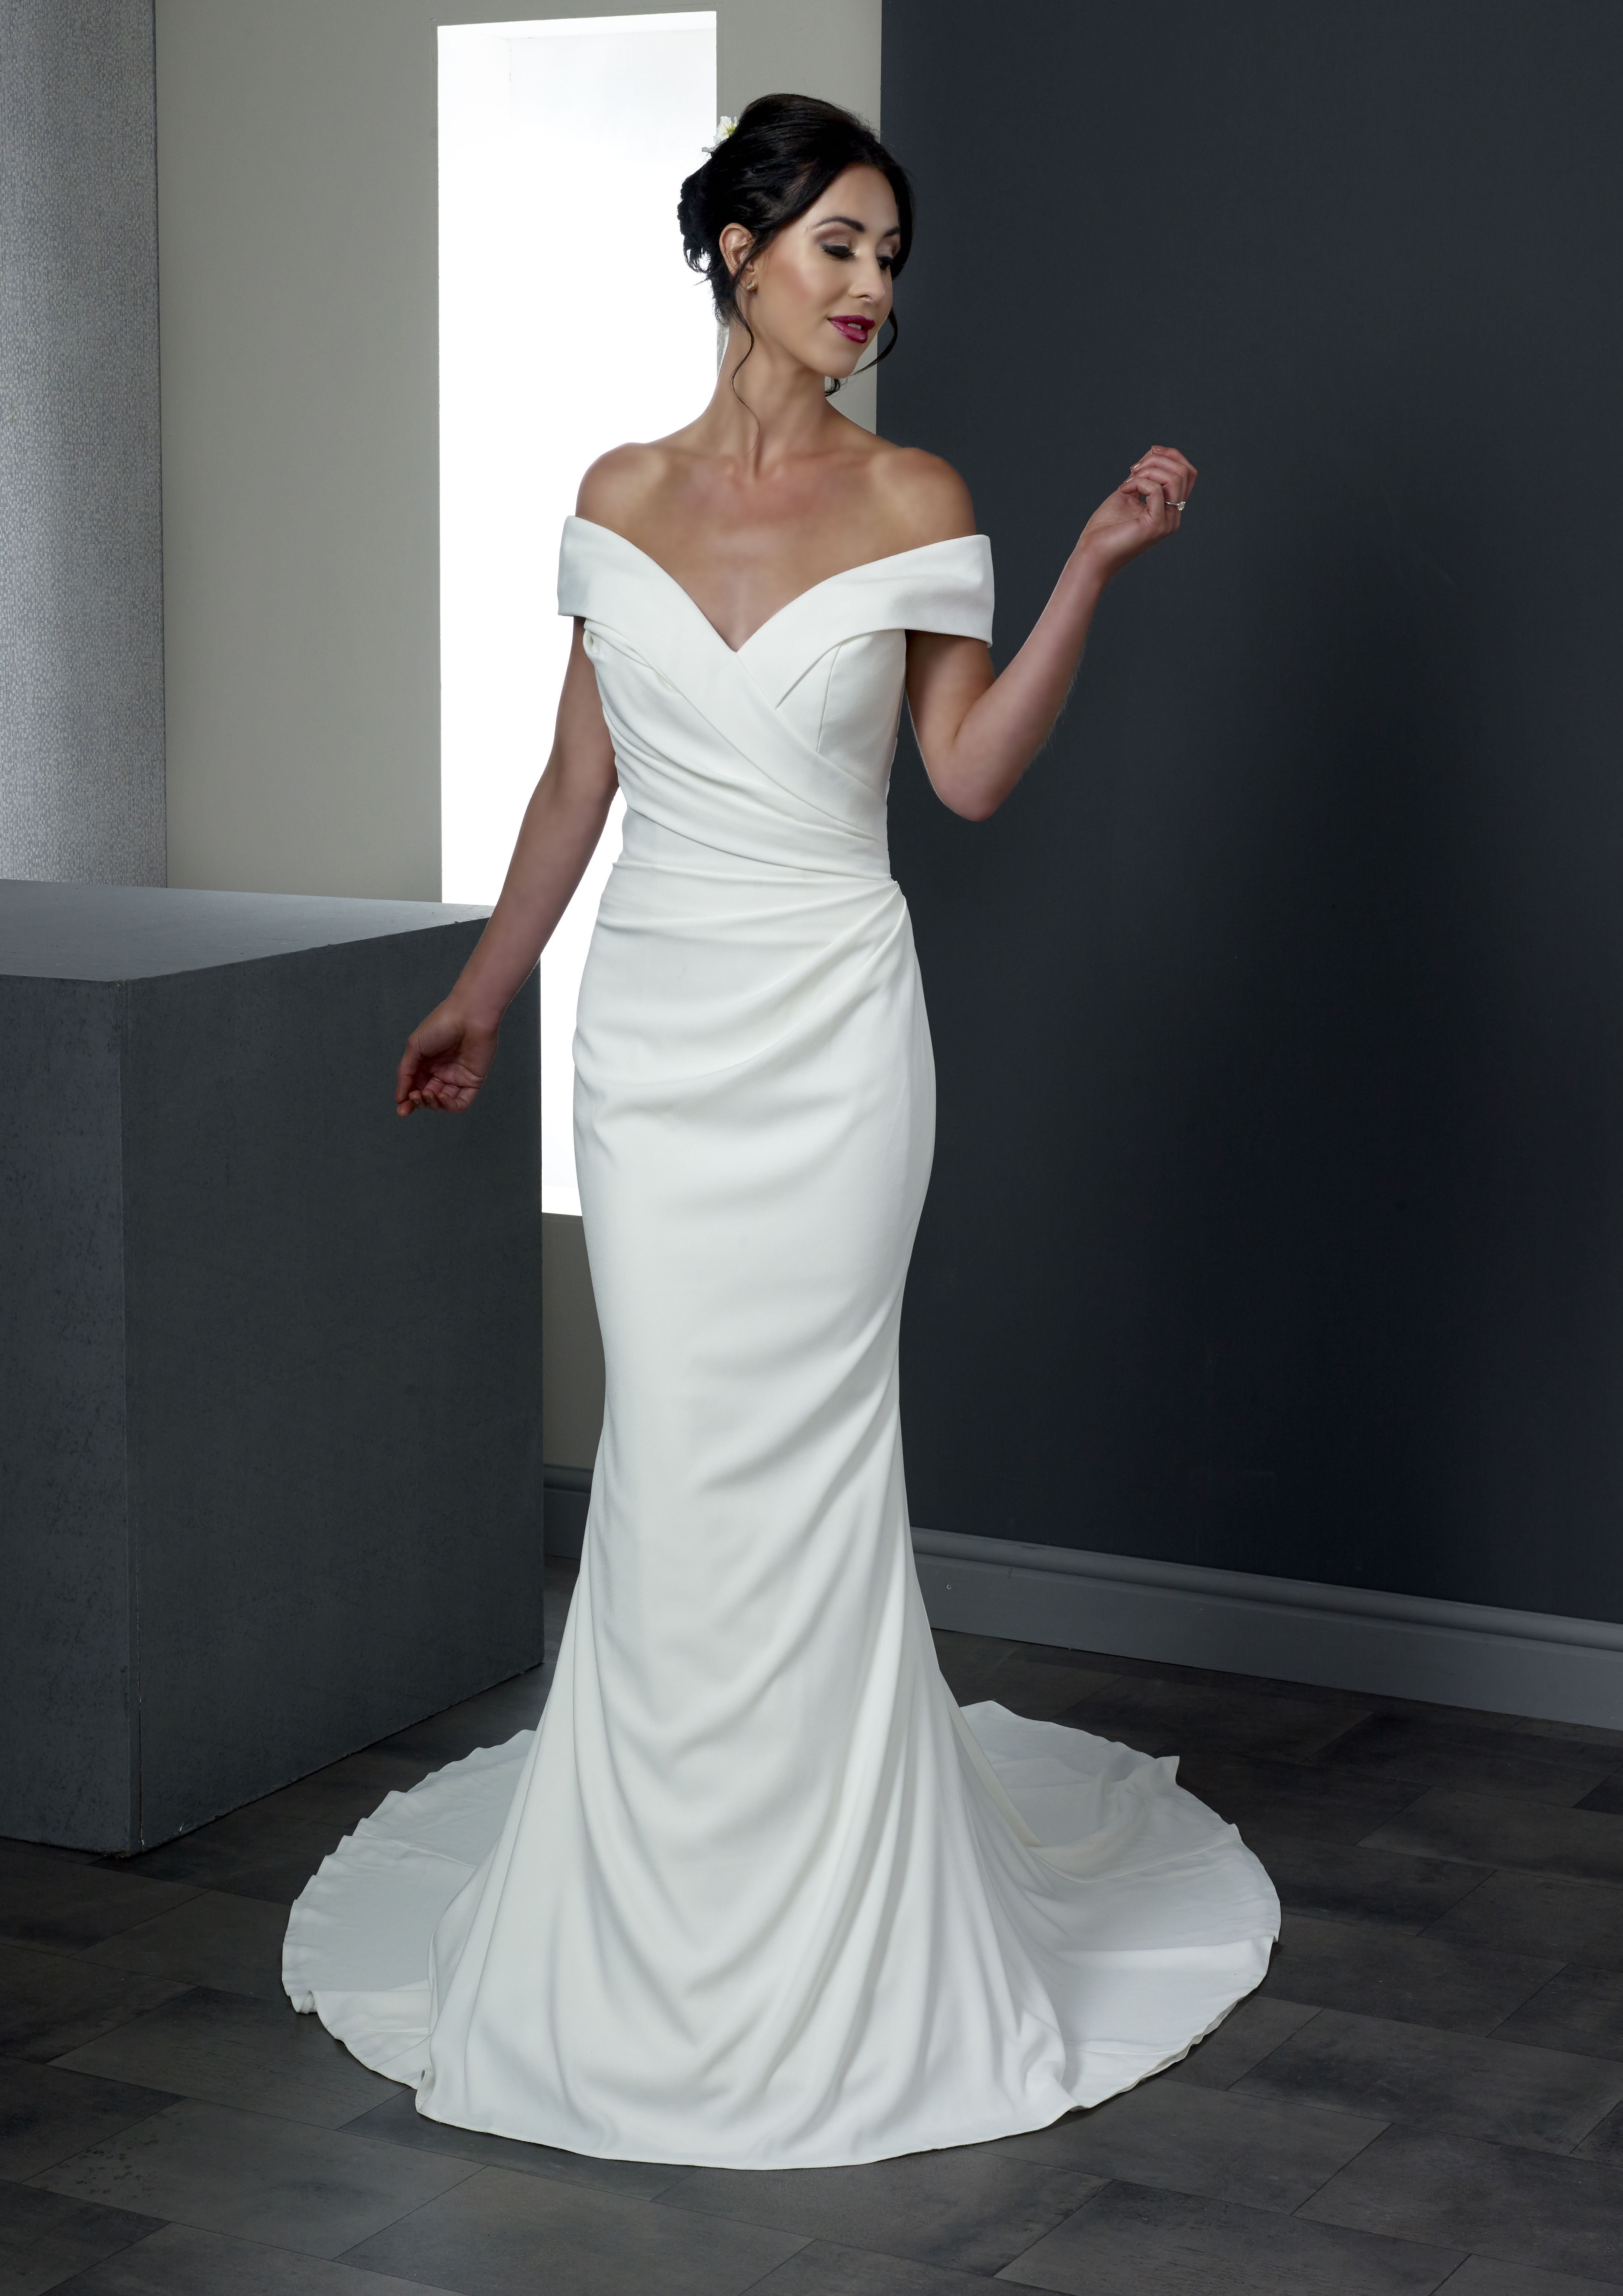 41+ Plain wedding dress with buttons down the back info